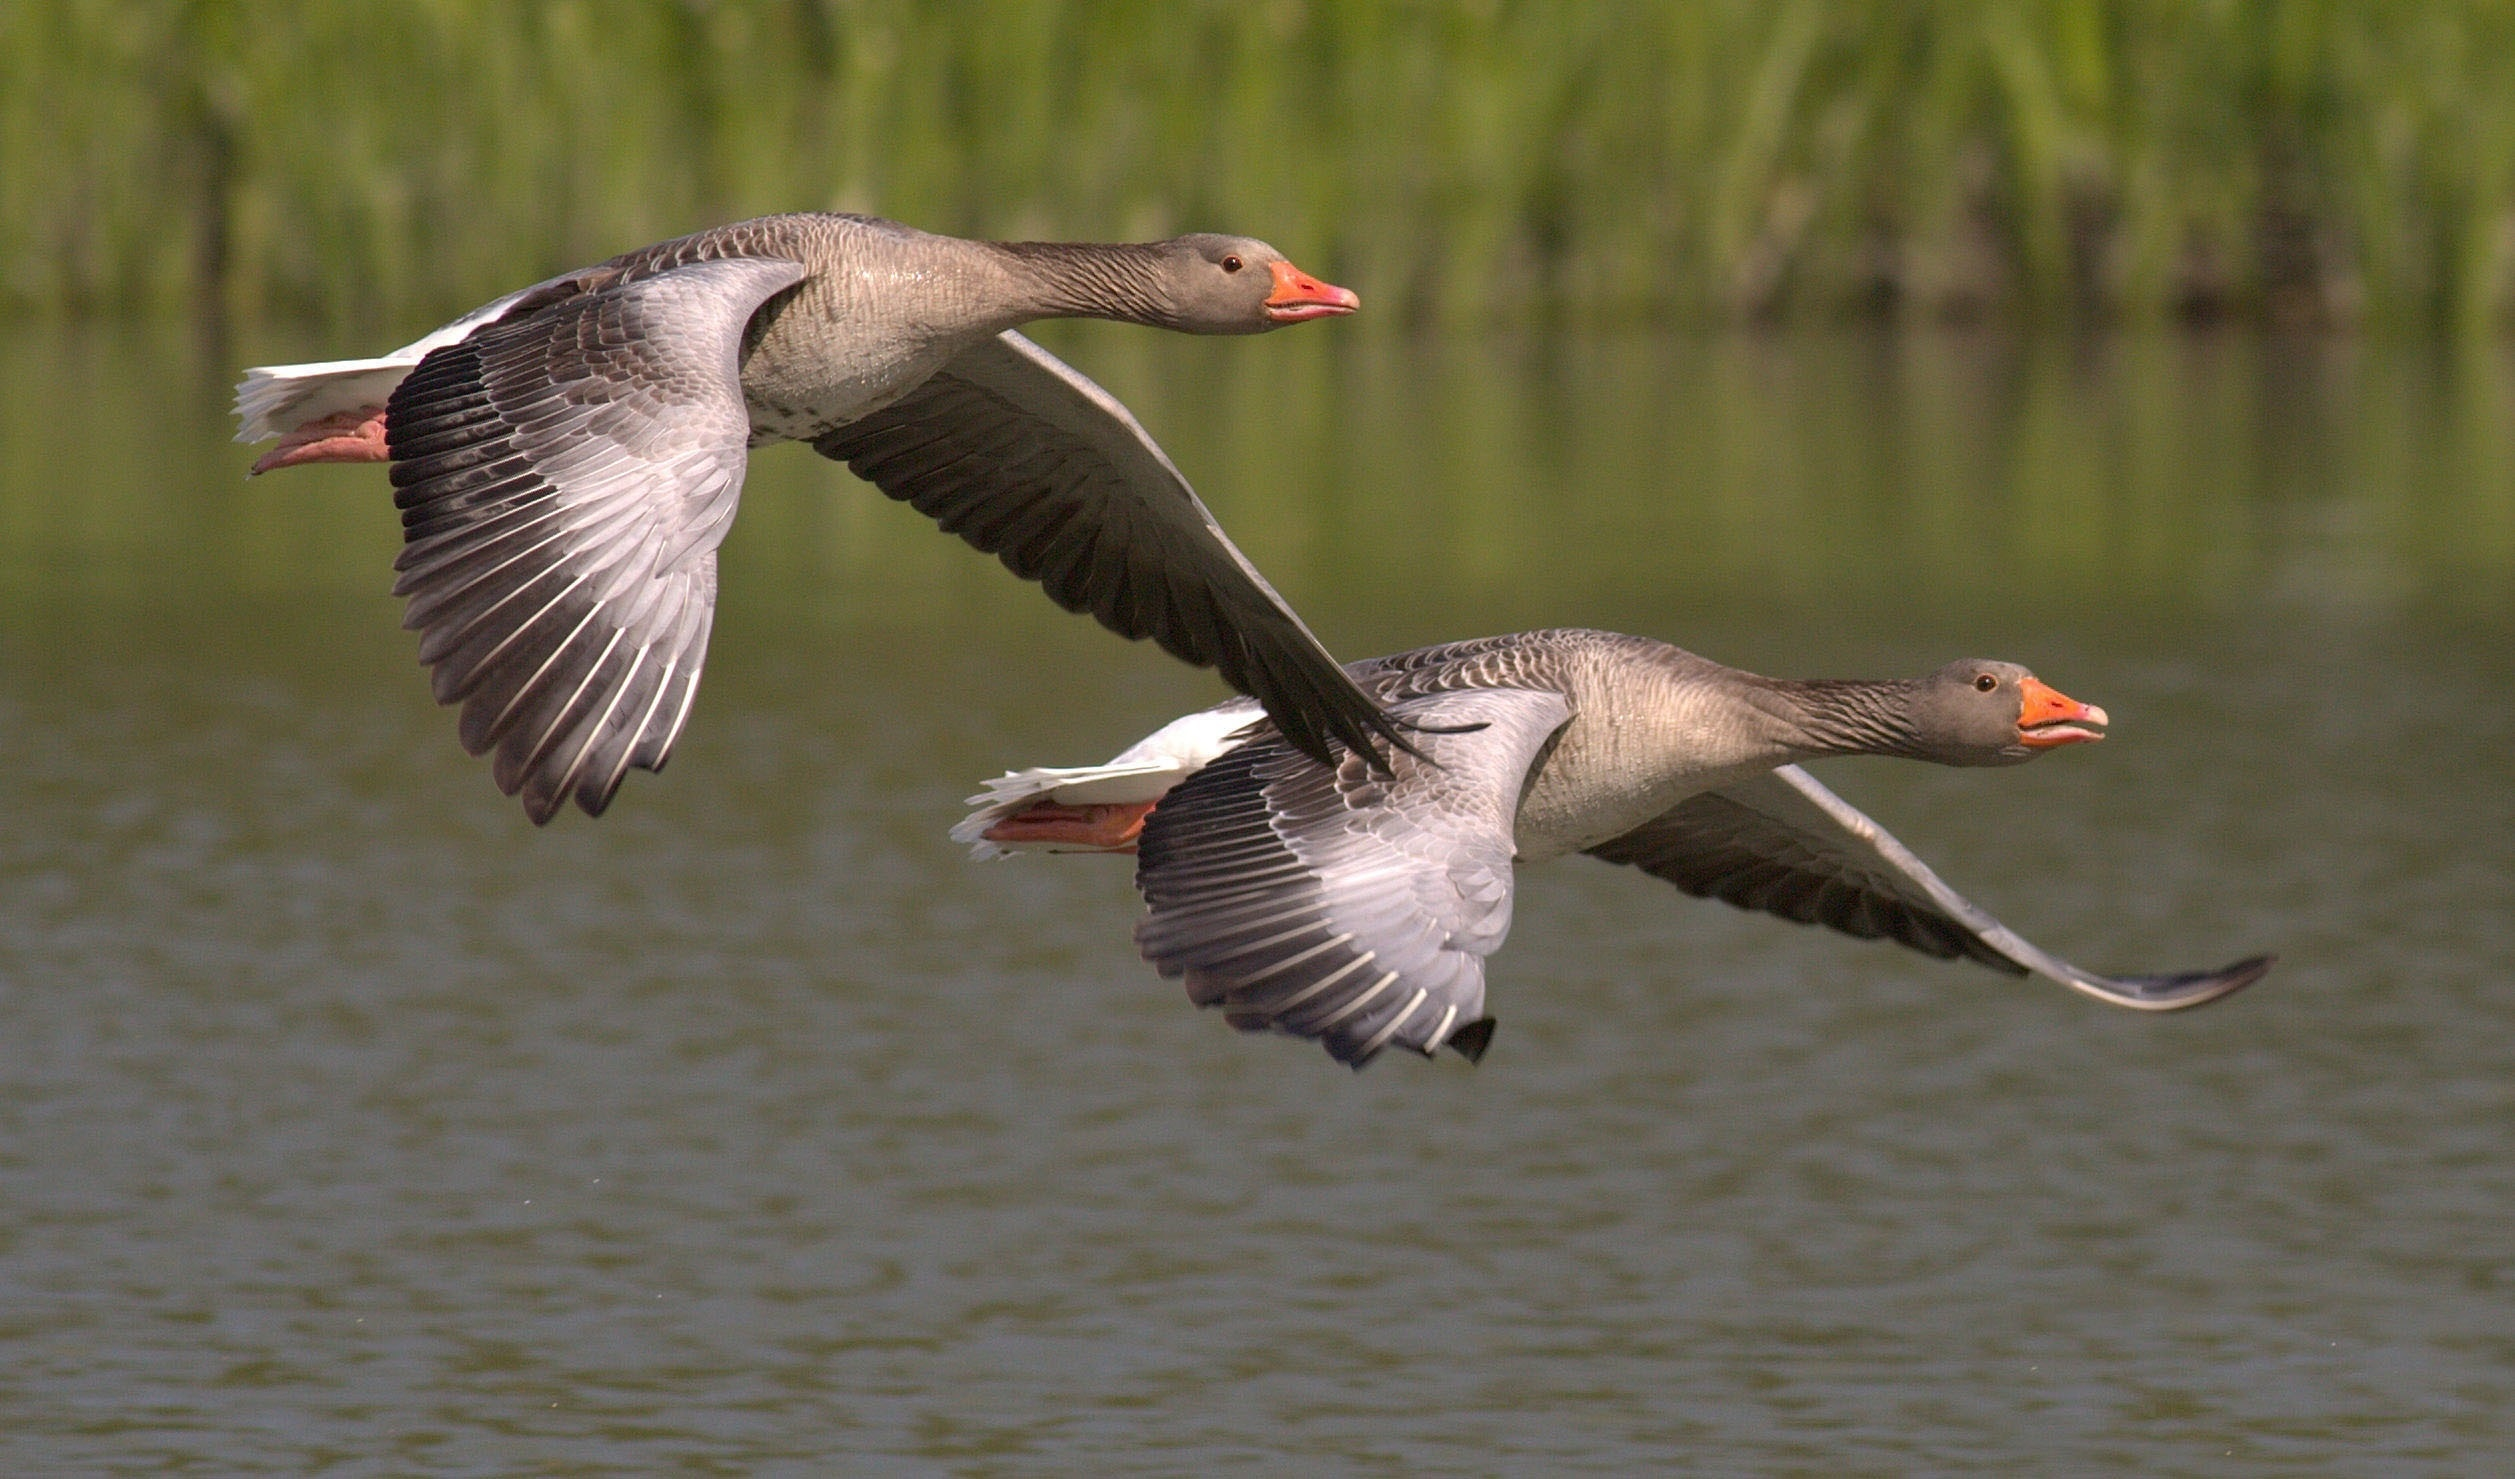 Two wild geese flying over river